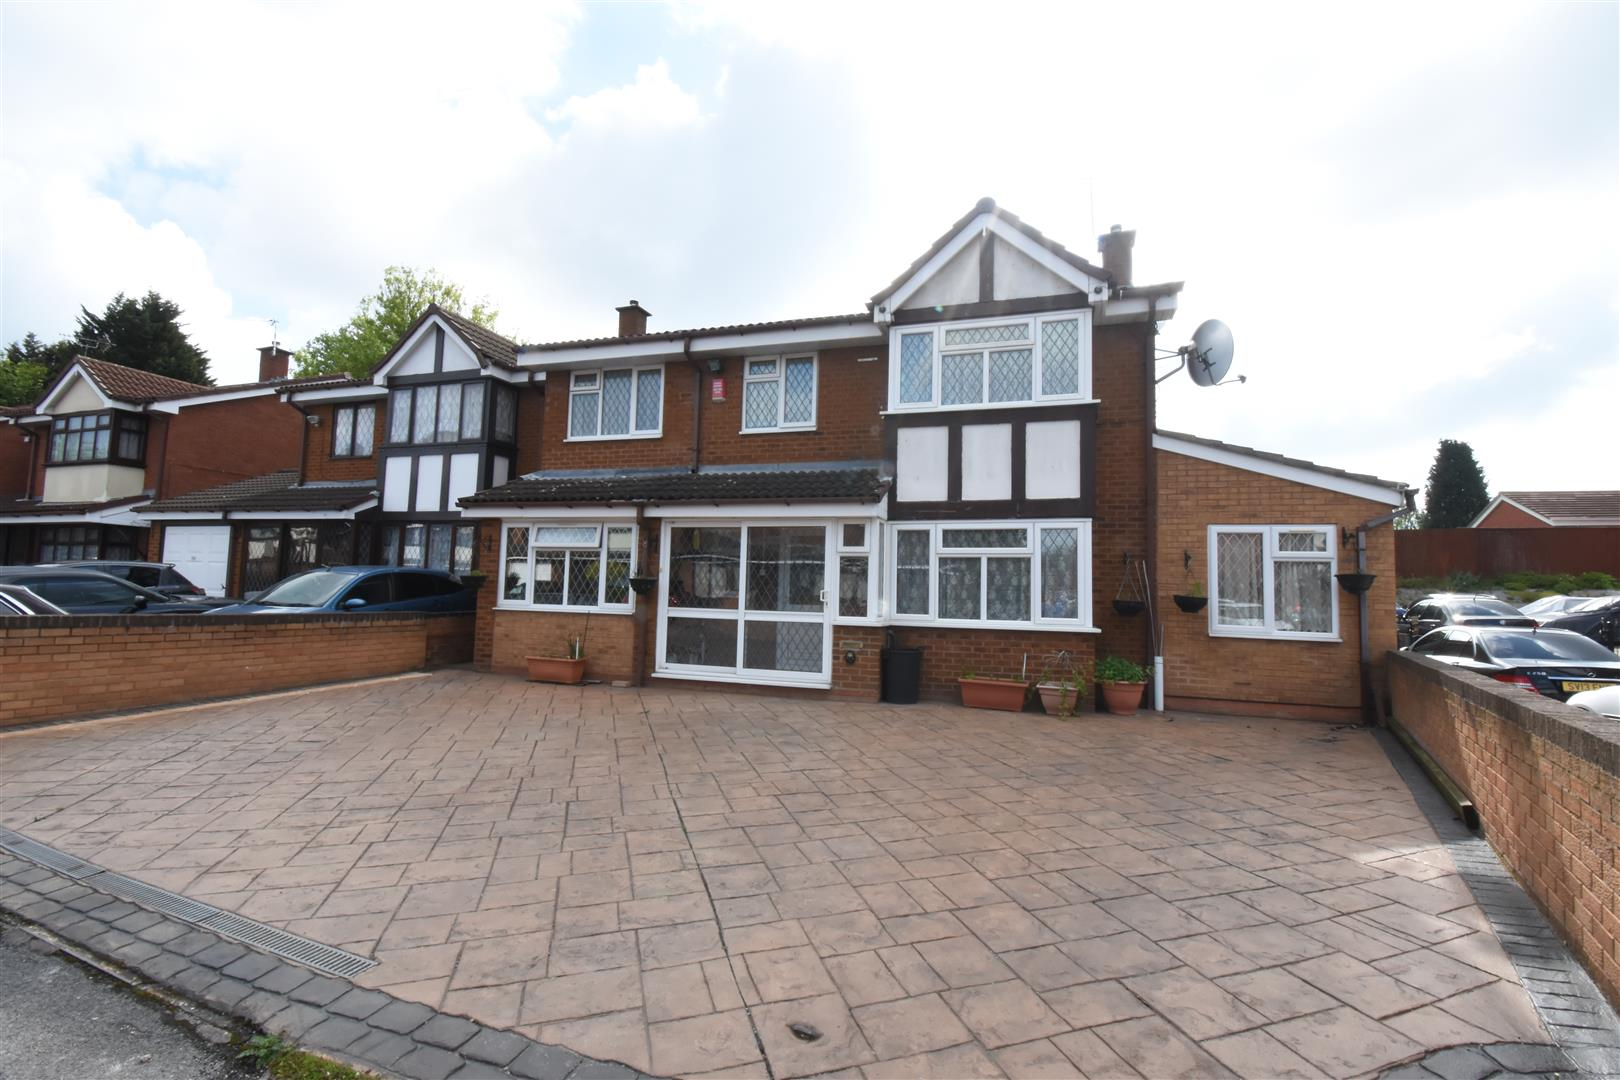 5 bed house for sale in Johnson Close, Hodge Hill, Birmingham, B8